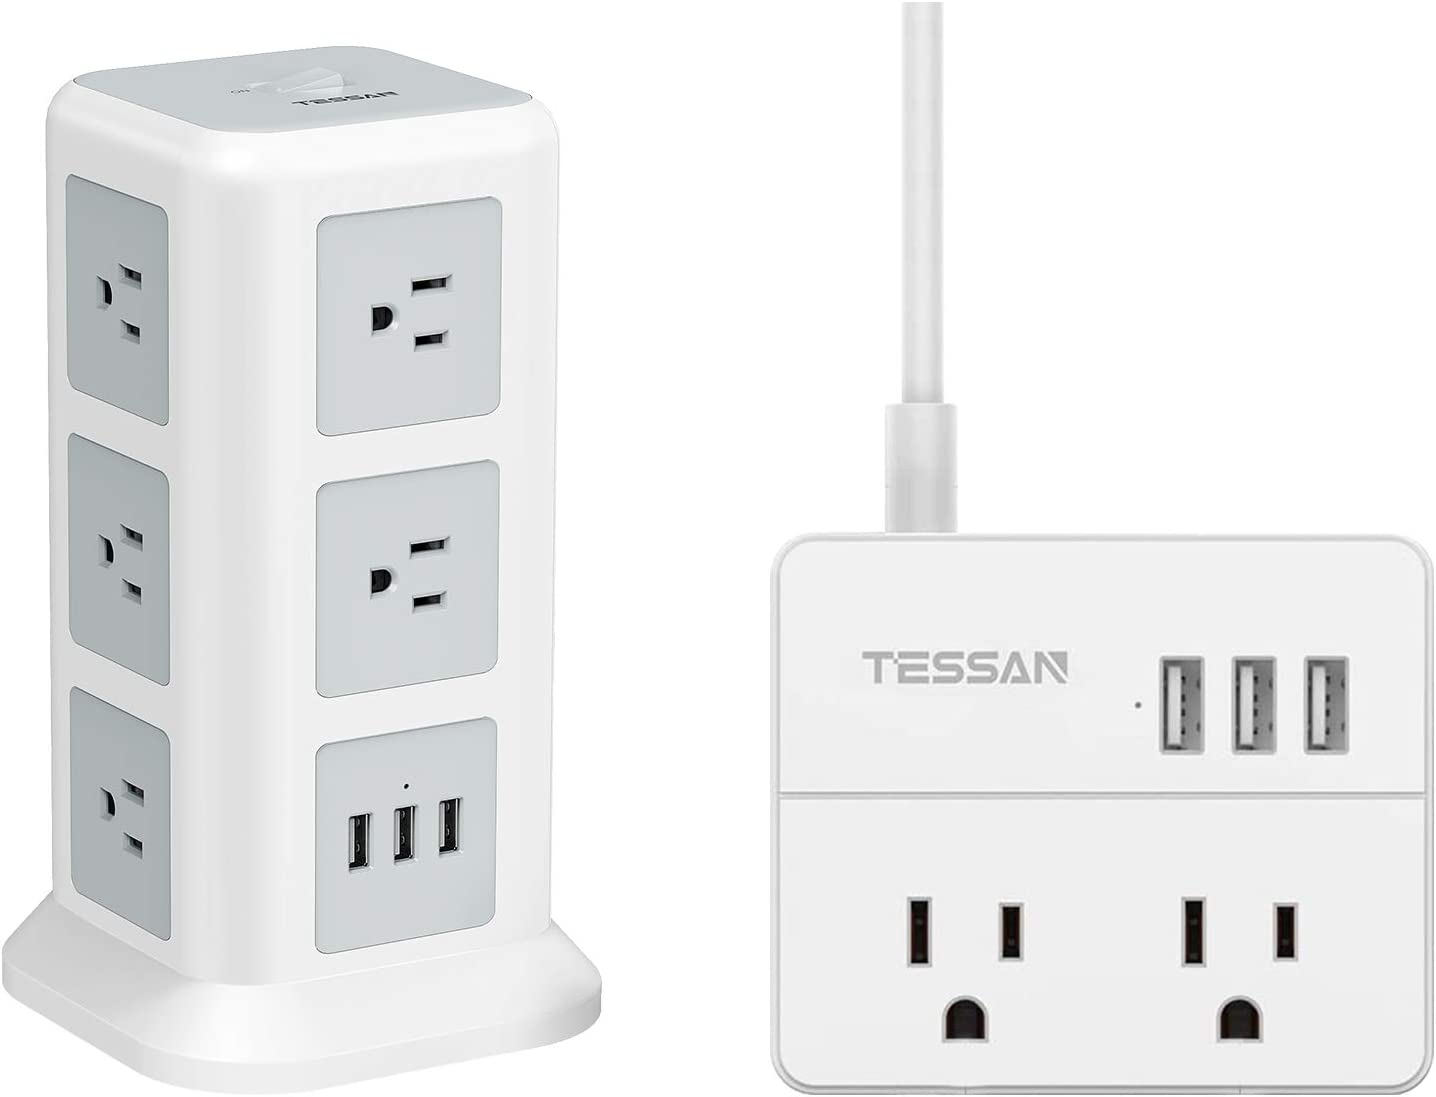 TESSAN Surge Protector Power Strip Tower and Small Extension Cord, Flat Plug Desktop Charging Station with Widely Spaced Outlets and 3 USB Charger for Home, Office